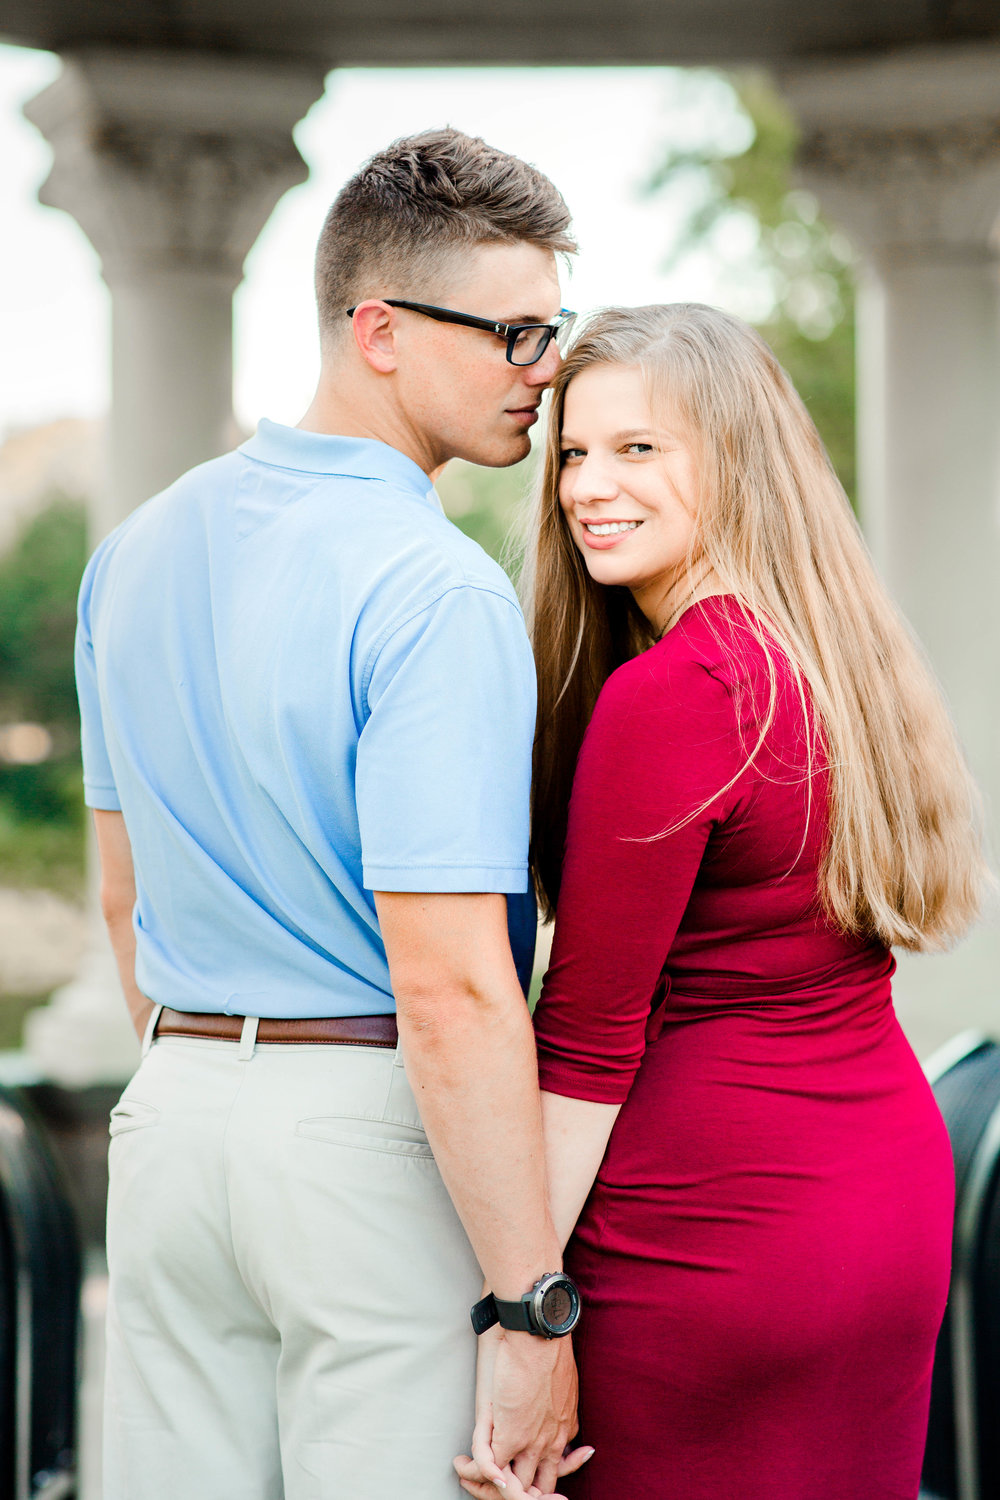 MaryElizabeth_Will_Engagement-54.JPG